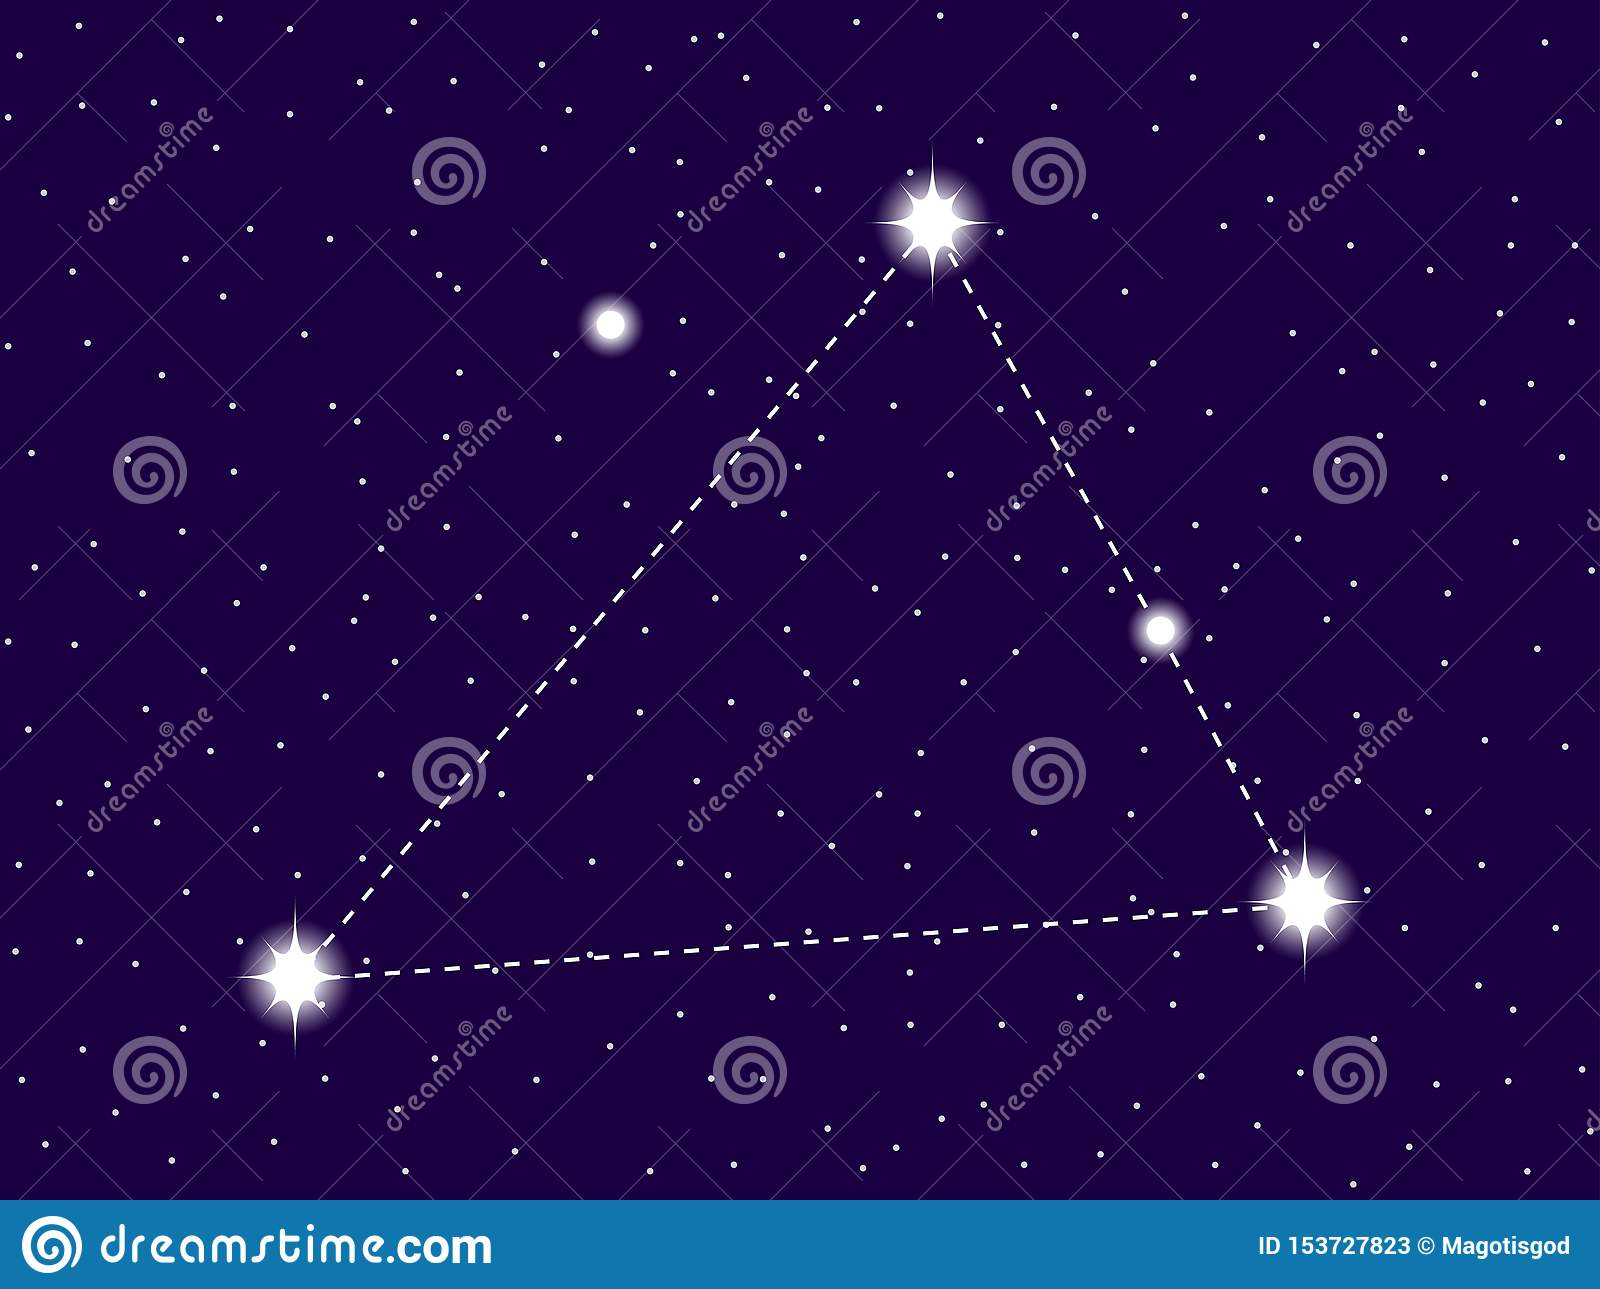 Triangulum Australe constellation. Starry night sky. Zodiac sign. Cluster of stars and galaxies. Deep space. Vector